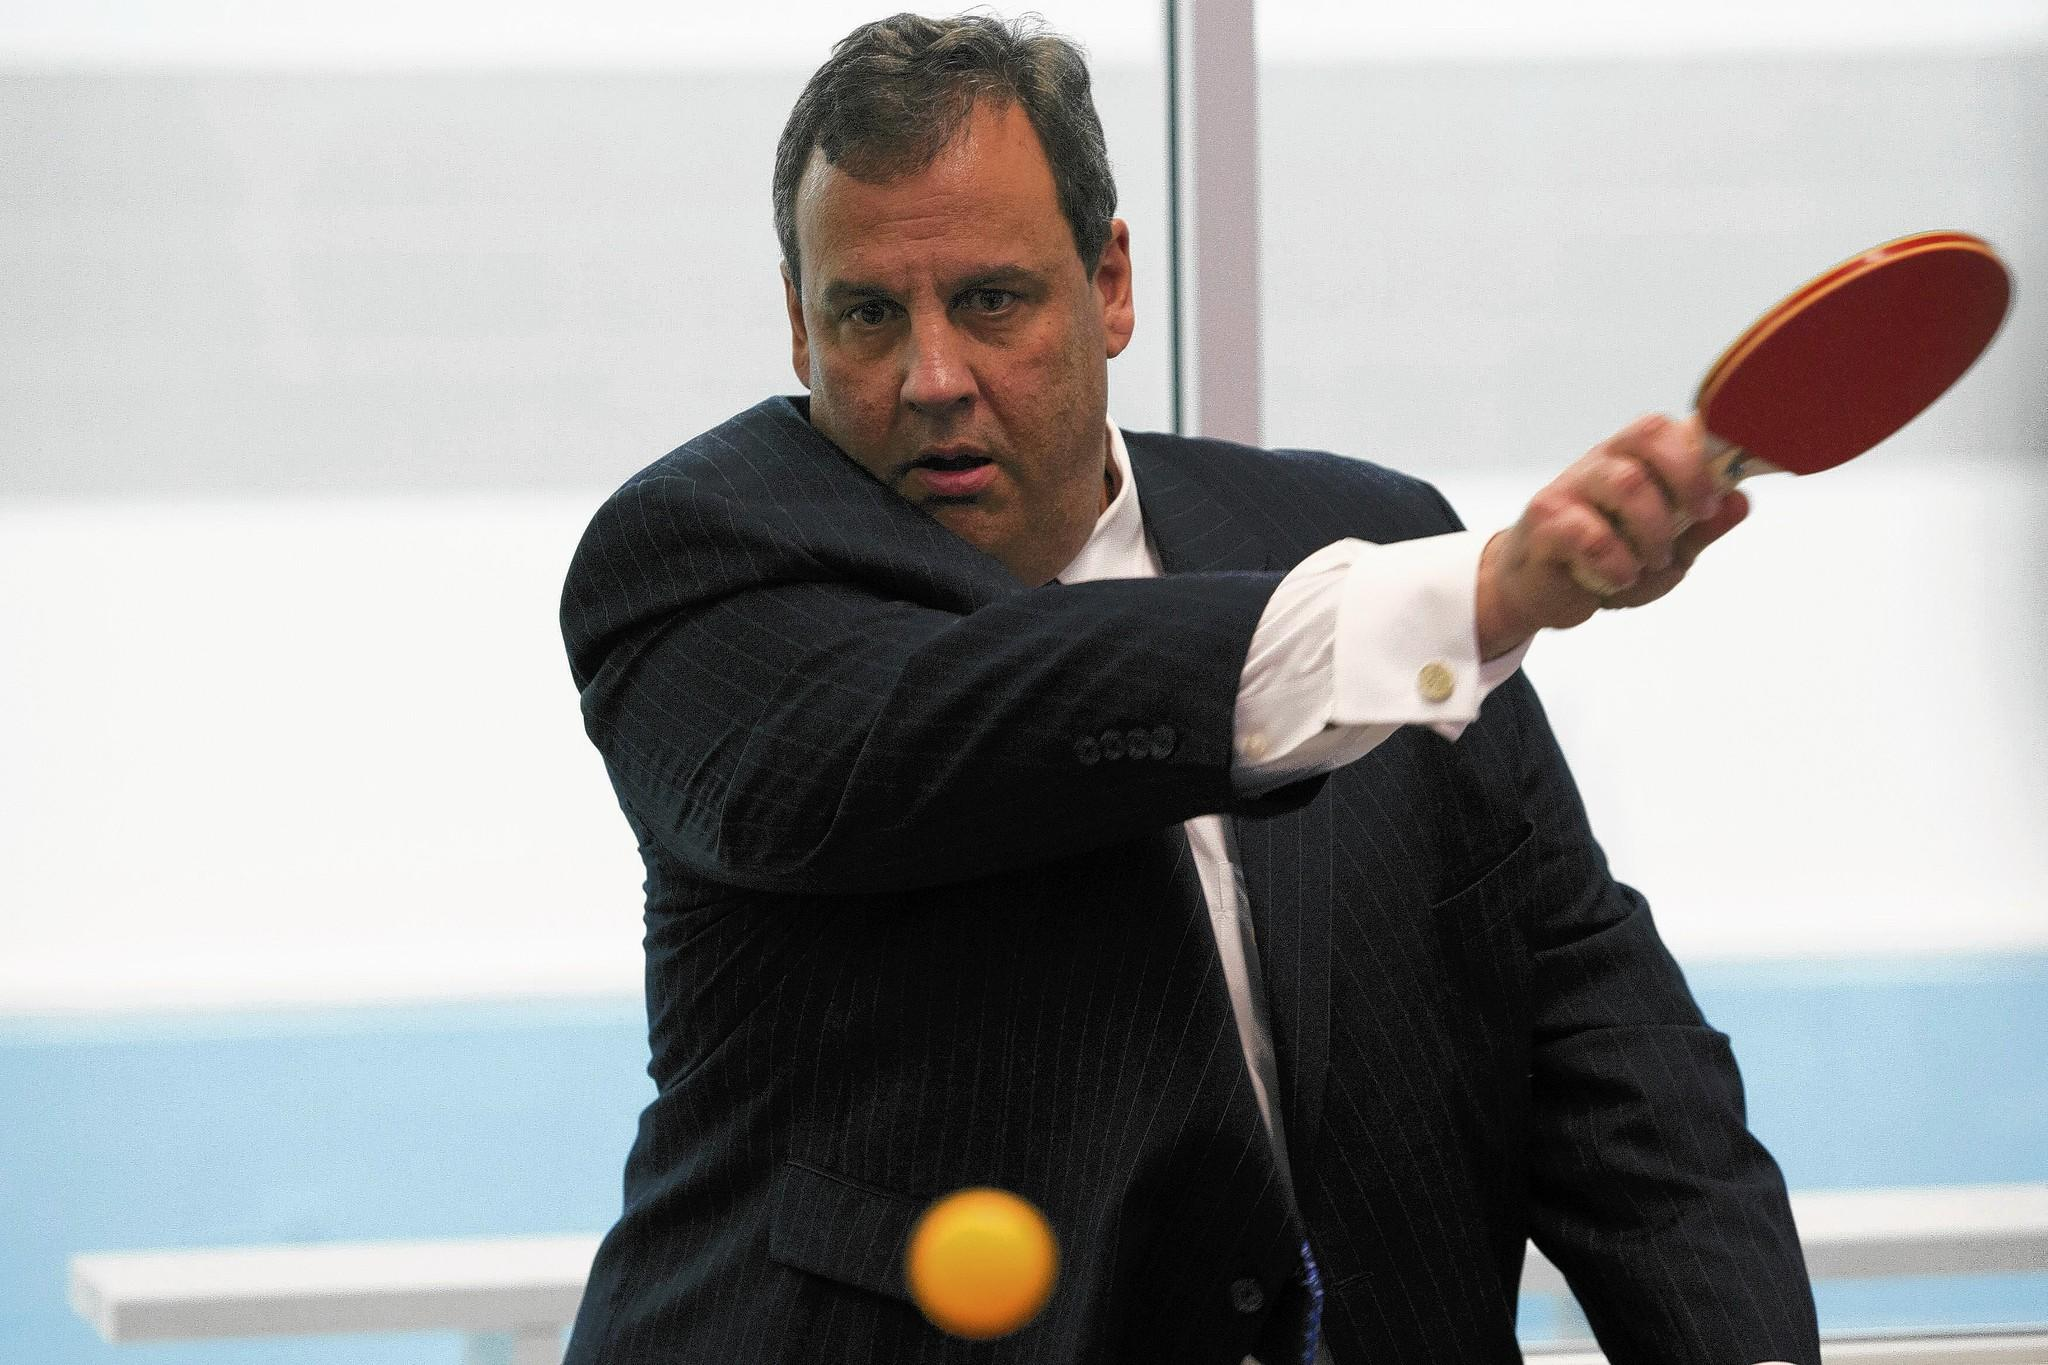 New Jersey Gov. Chris Christie tries his hand at table tennis after a news conference in Newark on Monday.